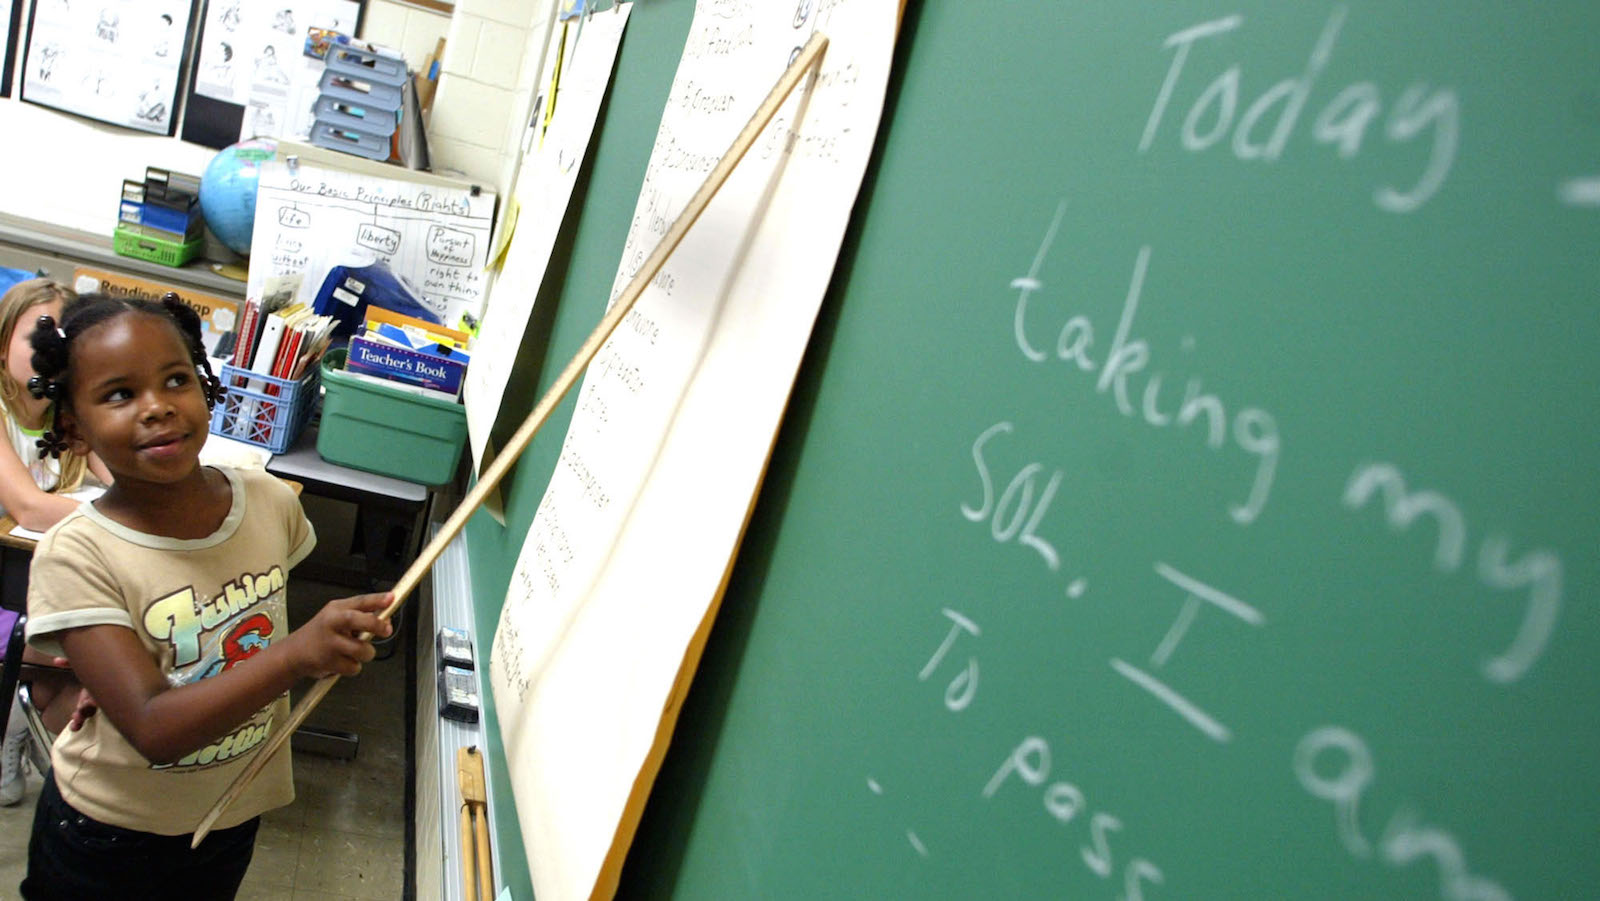 Marshawnda Overstreet, 9, points to the chalkboard during a lesson on reading Thursday, May 27, 2004, at B.C. Charles Elementary School in Newport News, Va. The goal in education remains to ensure all children succeed, but there's a dominant emphasis on poor and minority kids as the school year begins. Federal law demands yearly progress for all groups of students, and schools that receive poverty aid _ as most school districts do _ face penalties up to state takeover if they consistently fall short. (AP Photo/Jason Hirschfeld)